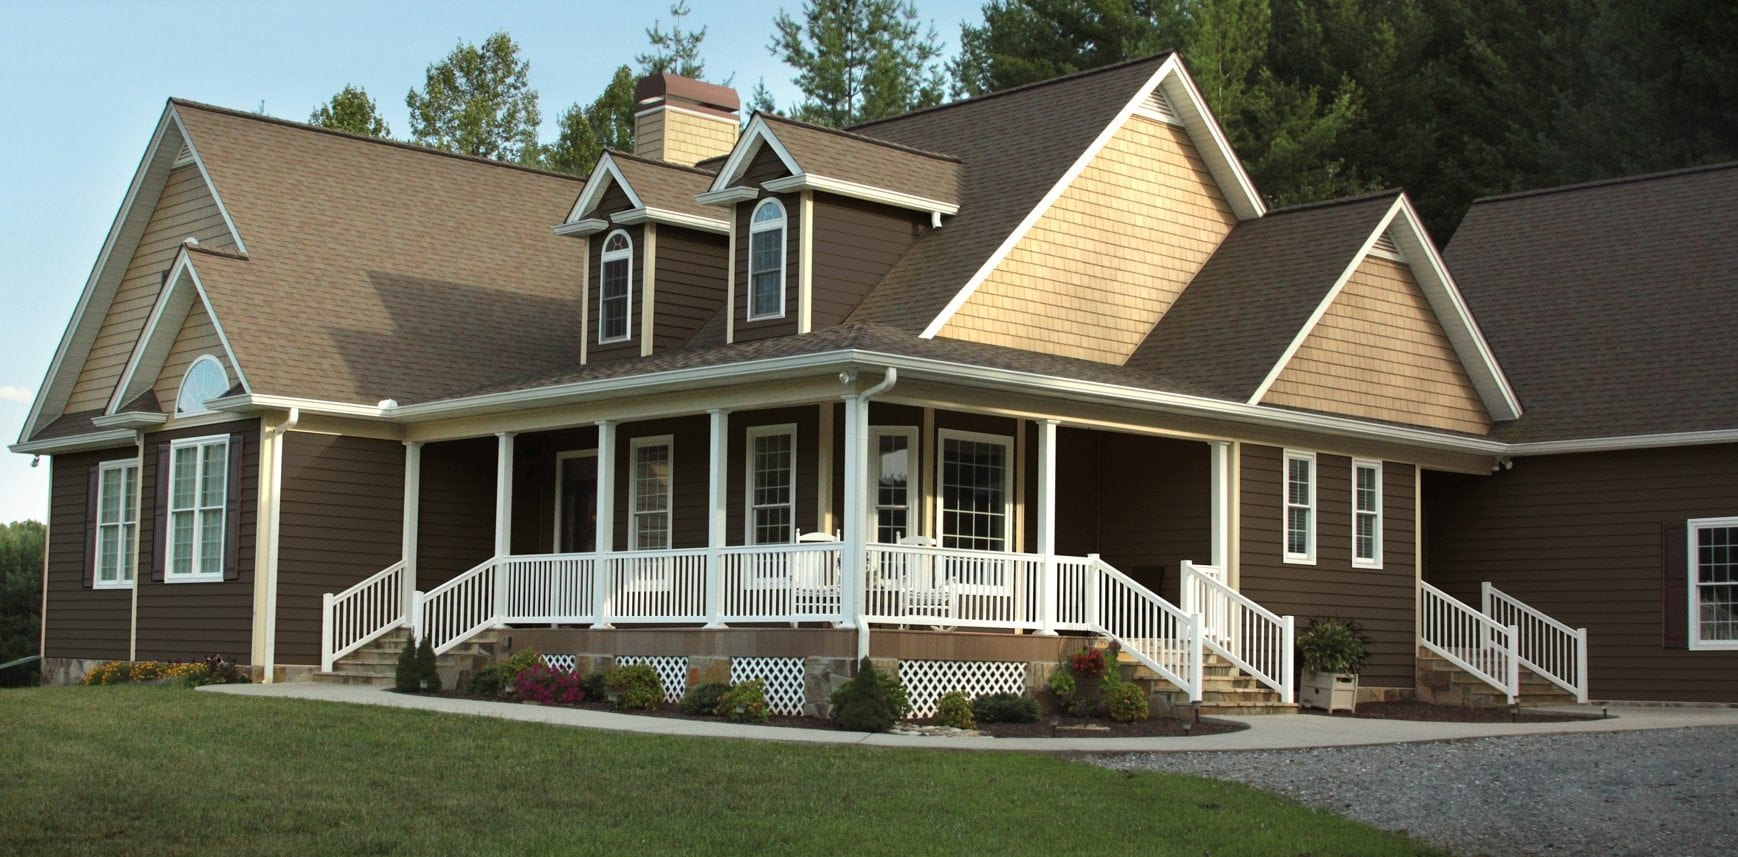 What type of siding should I choose? - All siding